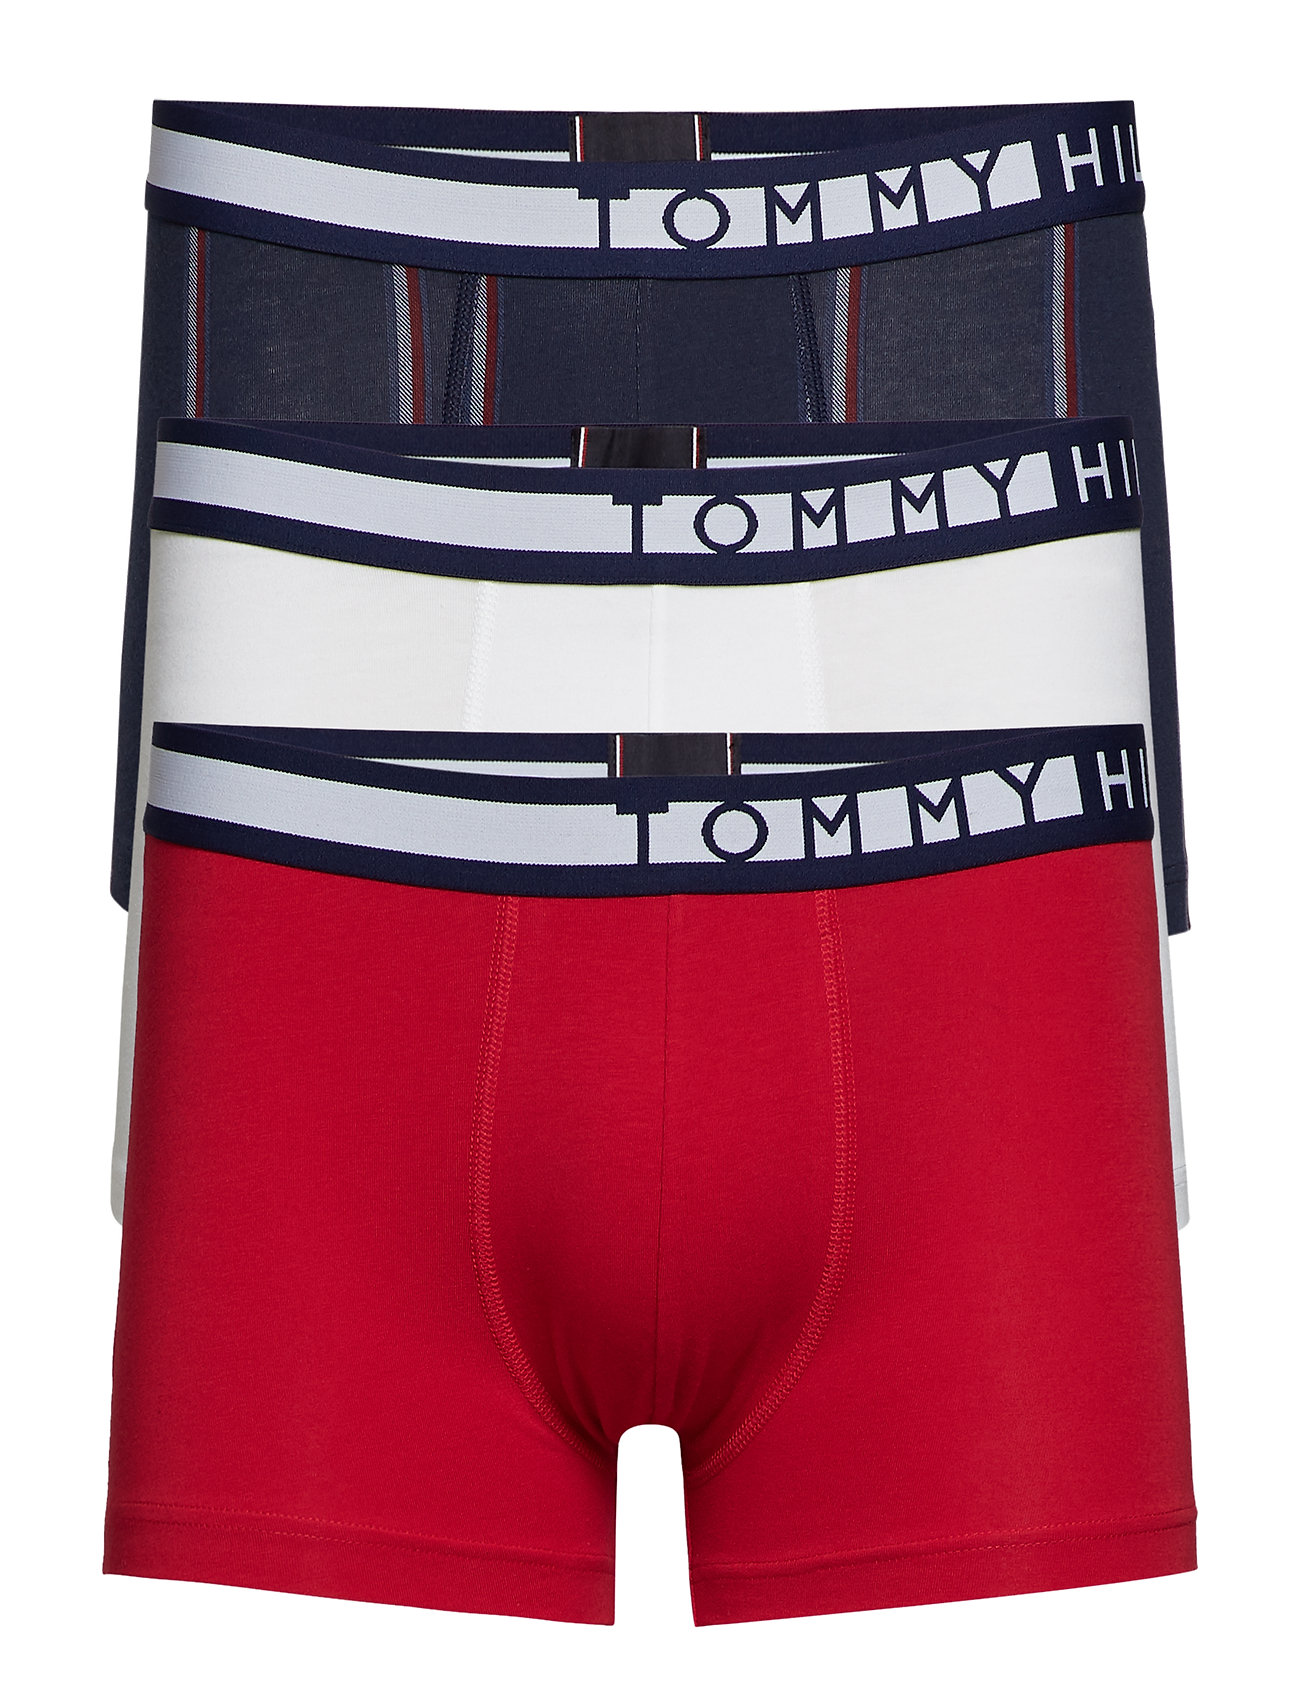 Tommy Hilfiger 3P TRUNK STRIPE - TANGO RED / WHITE / NAVY BLAZE